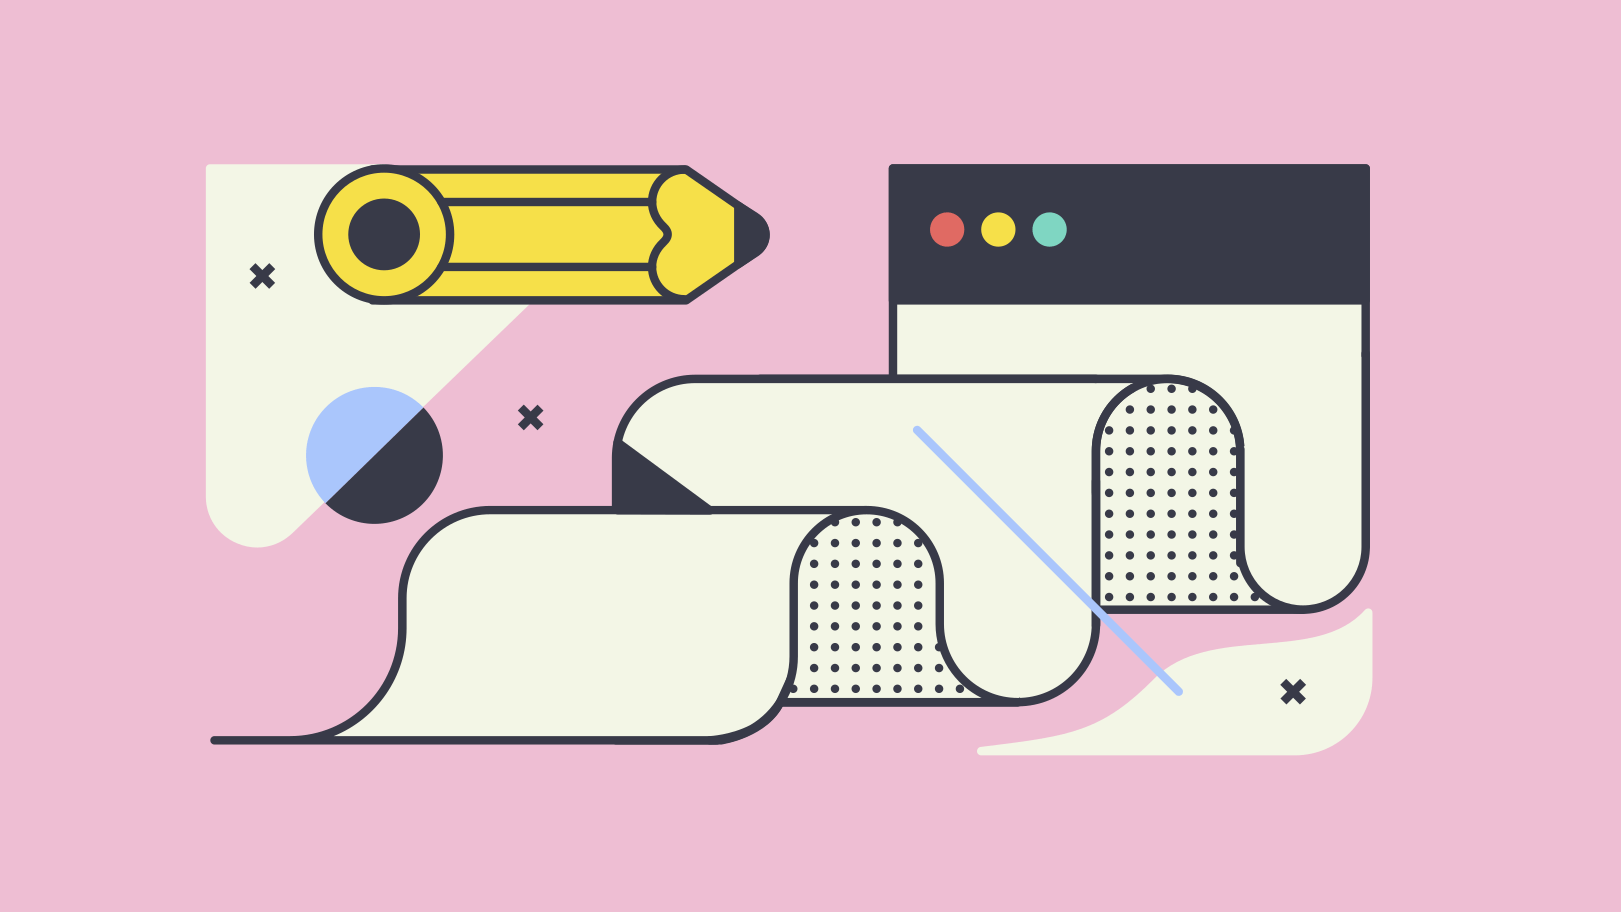 Illustration of a pencil and a browser window.